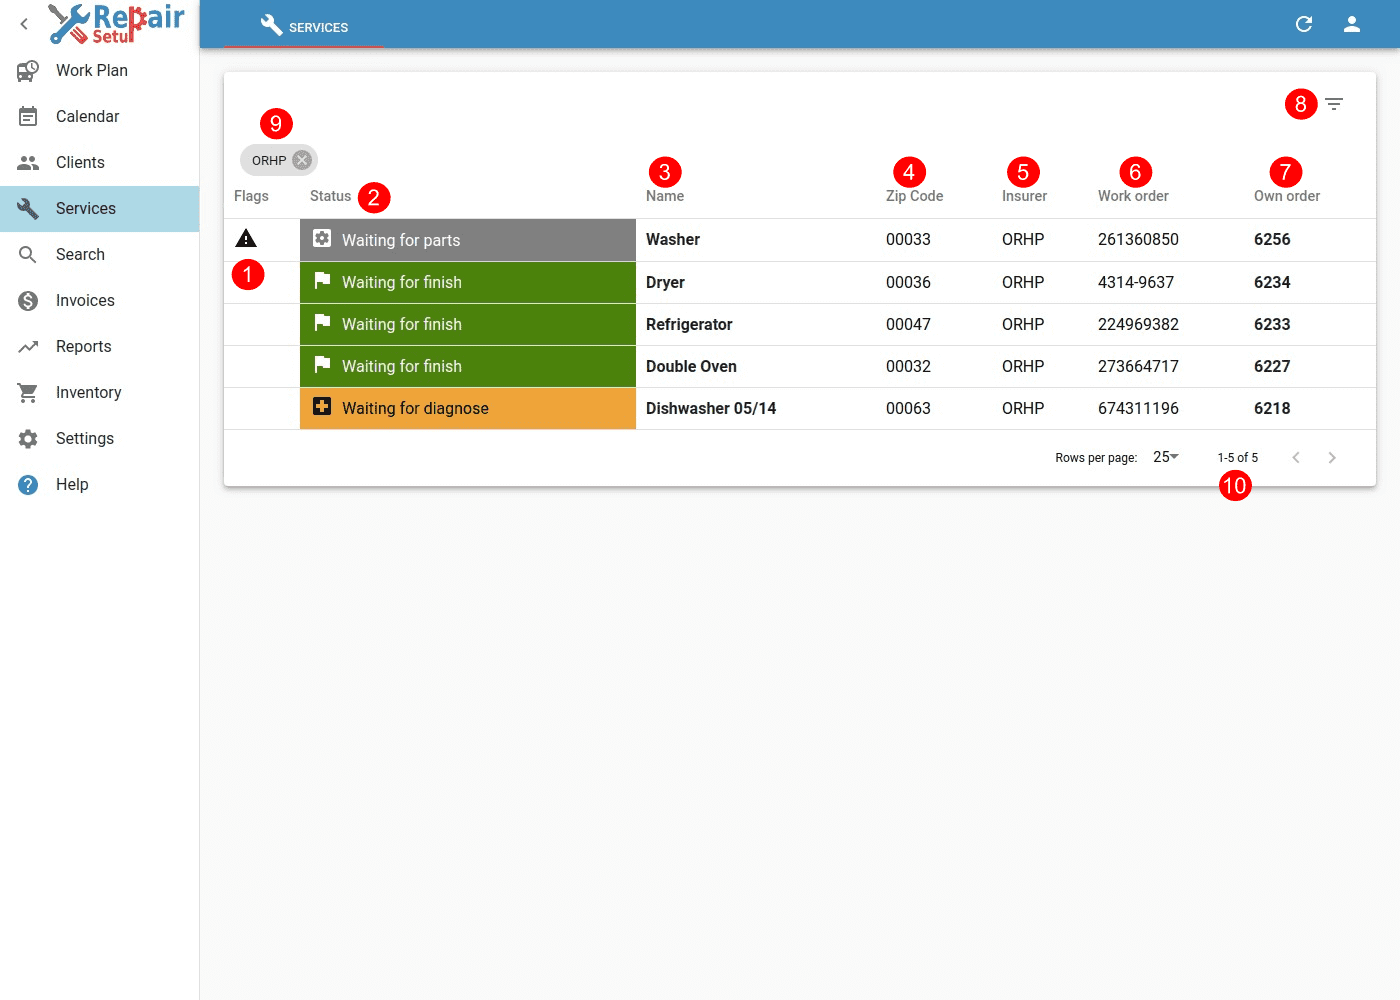 Services - Desktop view